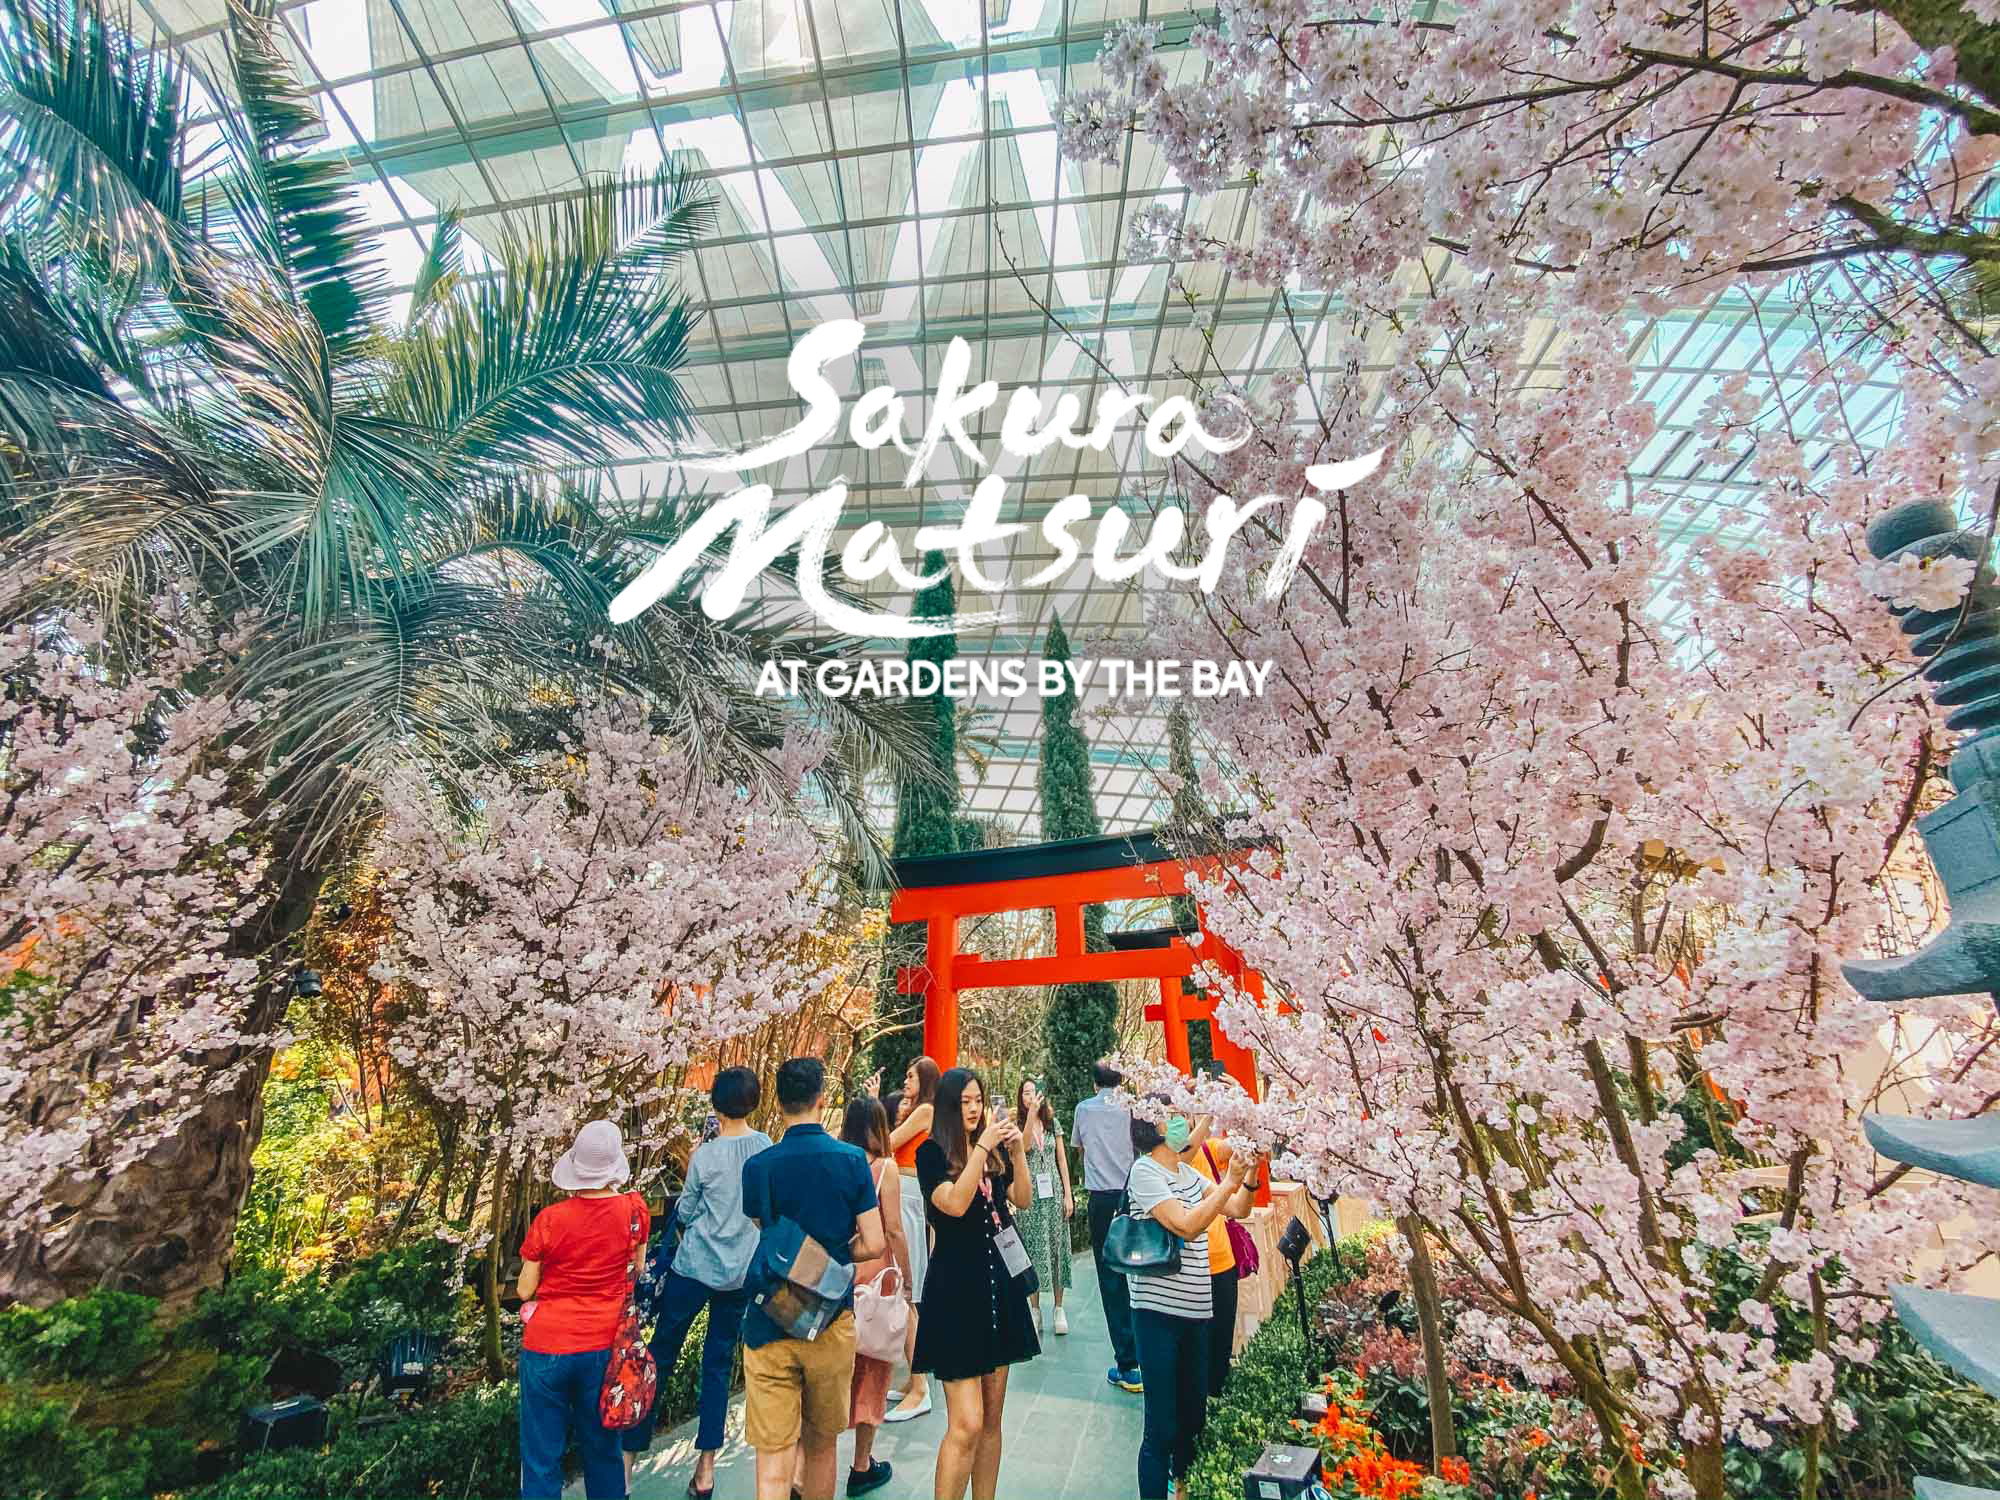 Sakura Matsuri at Gardens by the Bay 2020